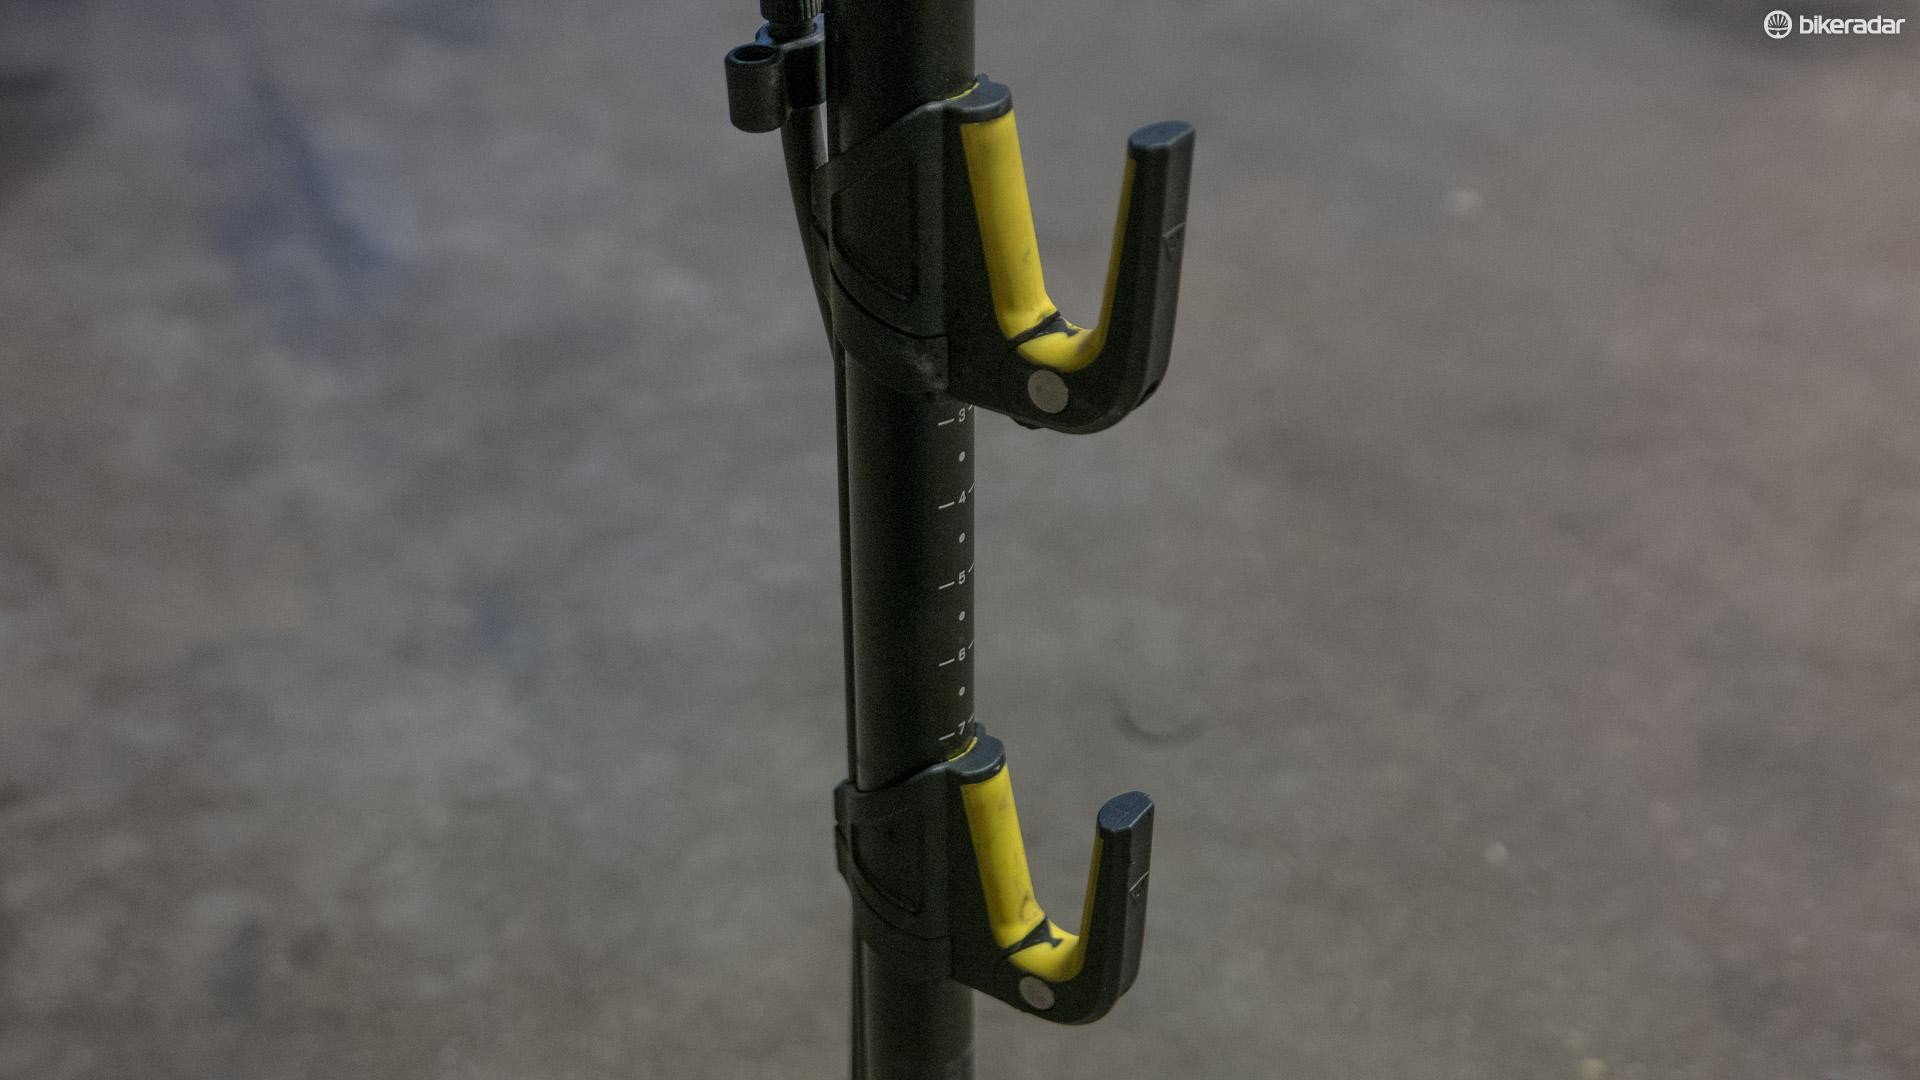 The rear triangle of your bike hangs in adjustable rubber-coated hooks